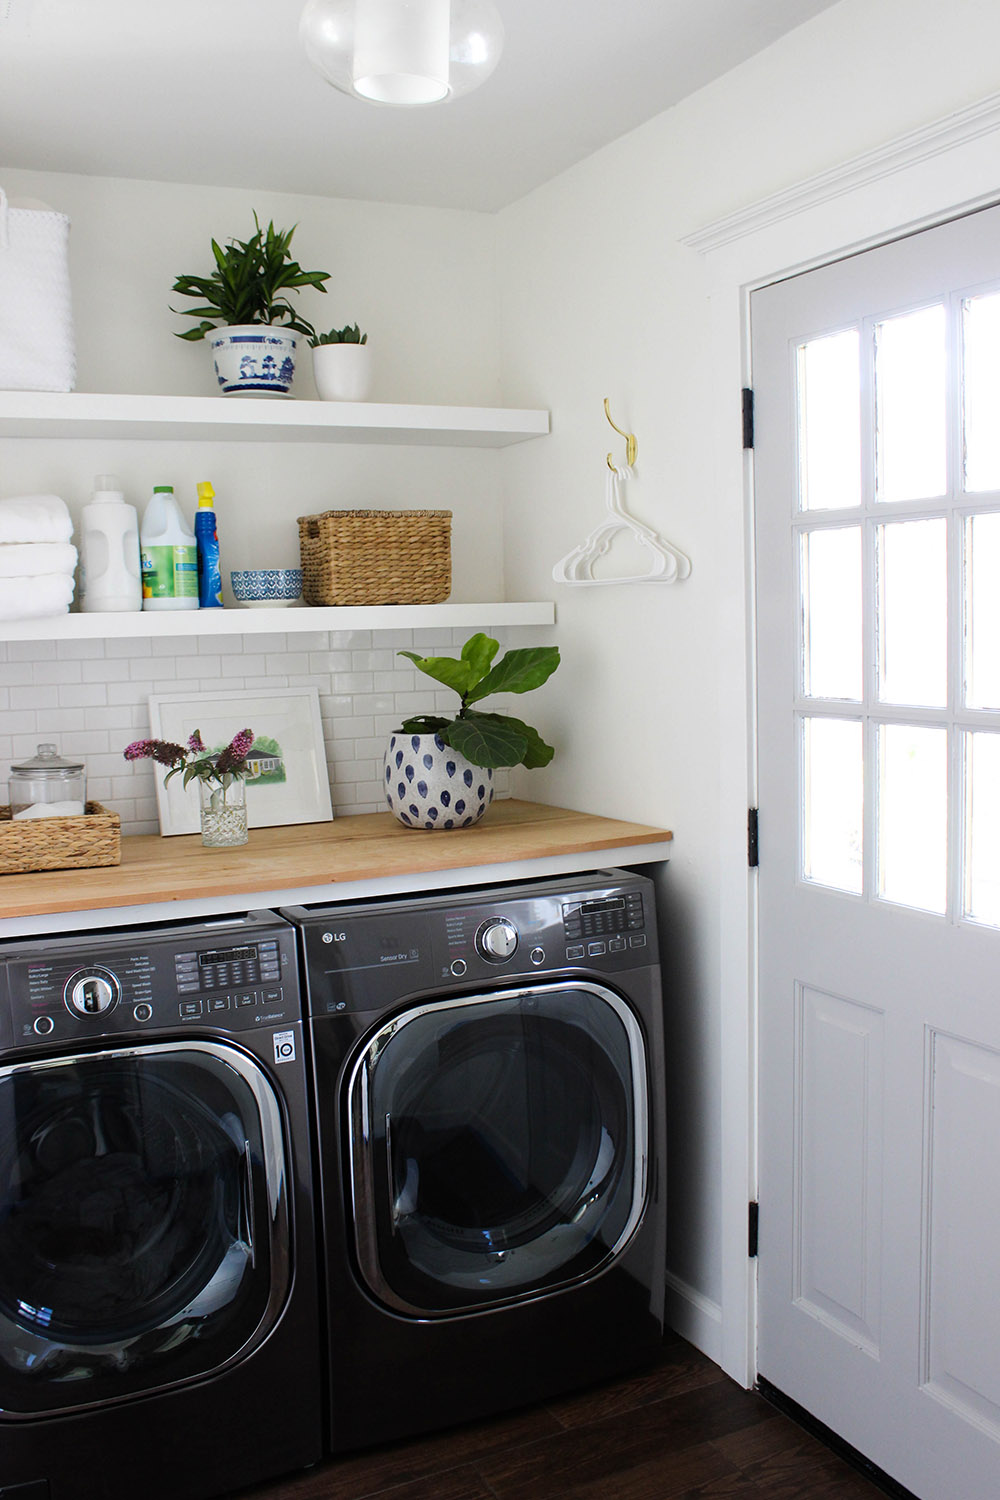 A laundry room with black front load laundry appliances.